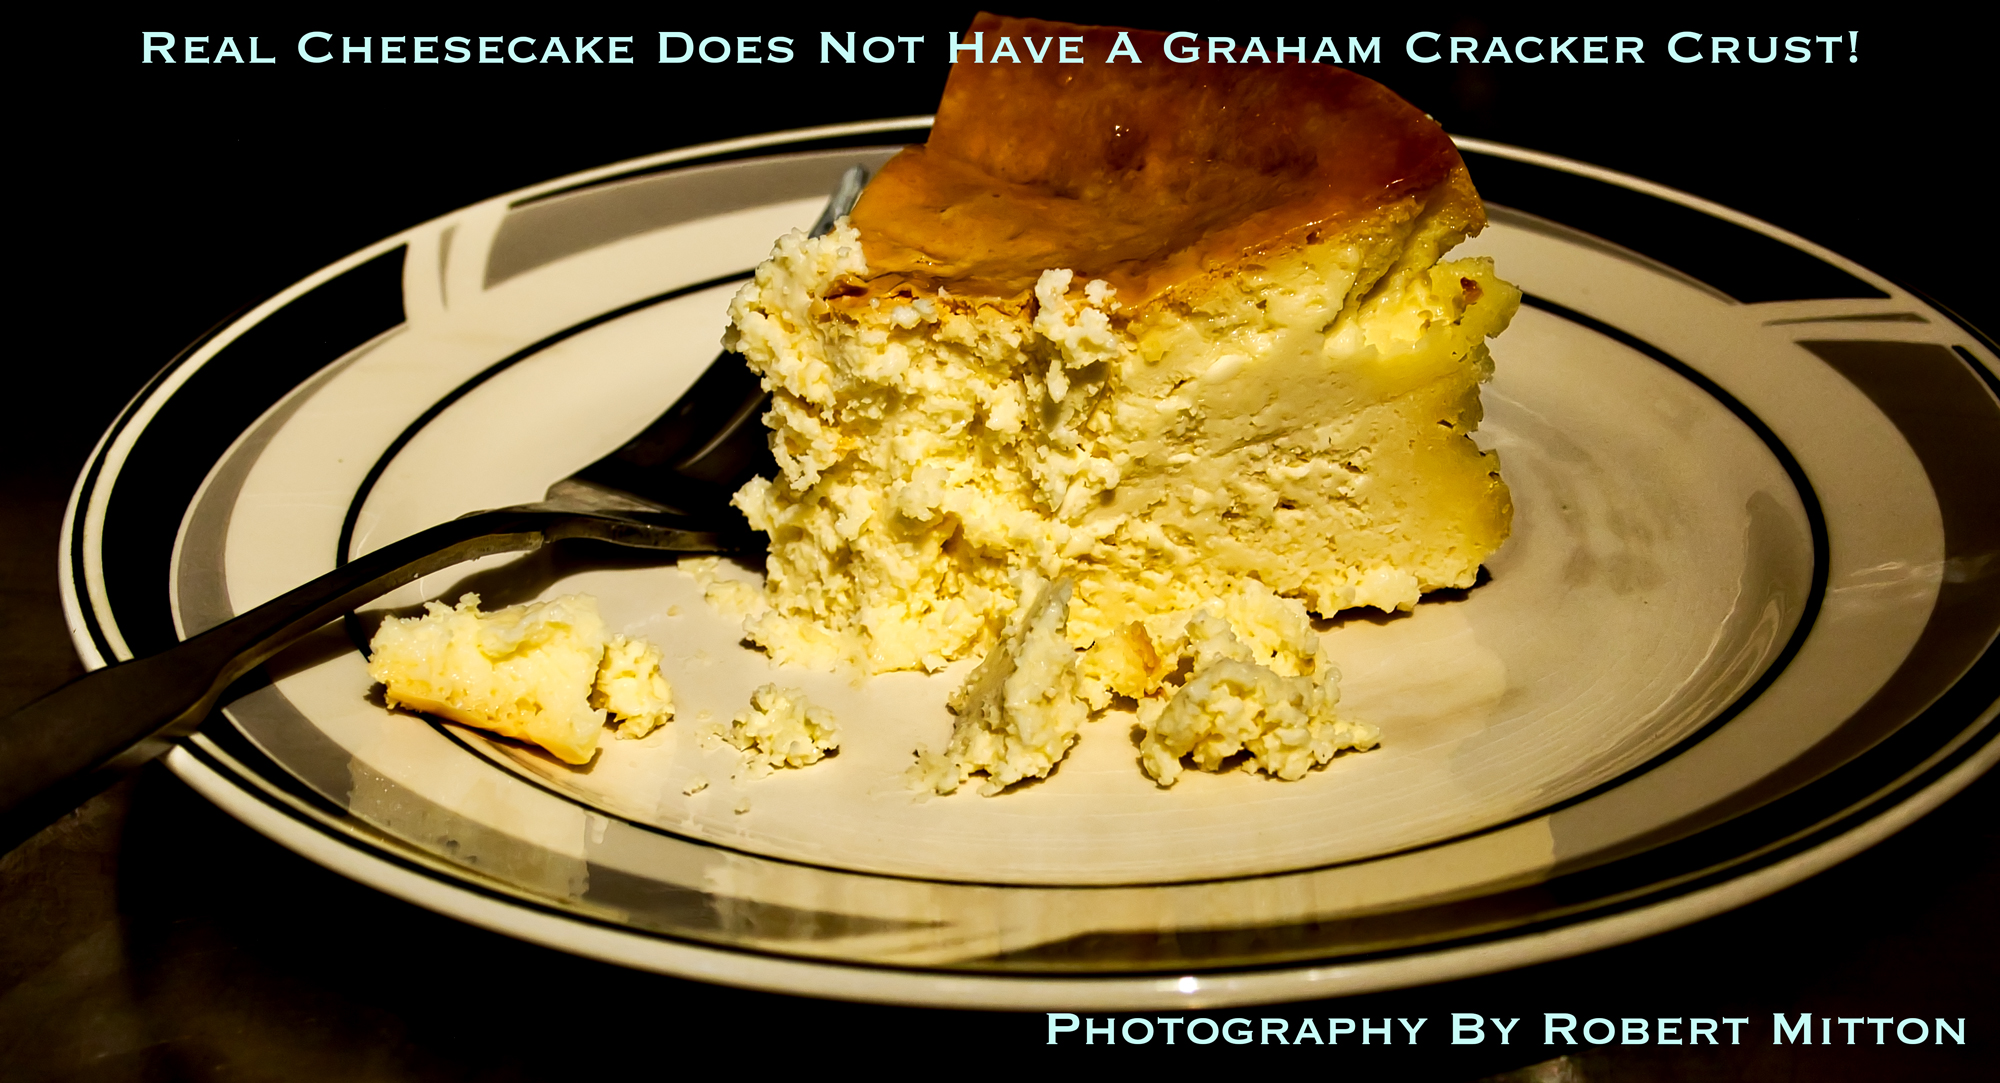 Real Cheesecake does not have a graham cracker crust!